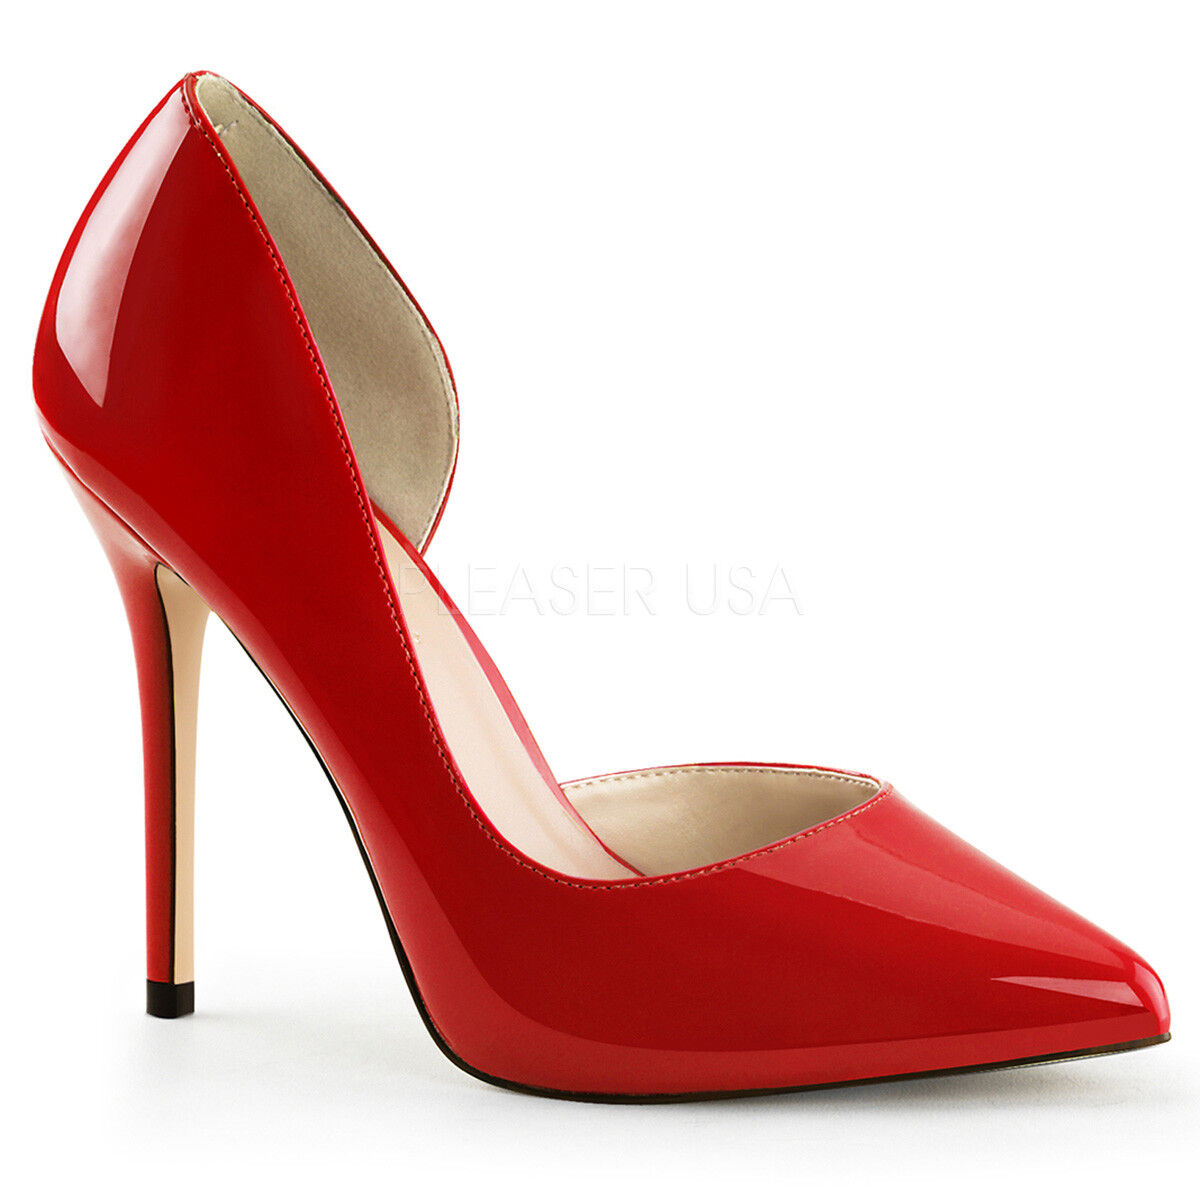 Pleaser AMUSE-22 Single Soles rot Patent Instep Cutout Cutout Instep Pump Stiletto High Heels c1d4ae